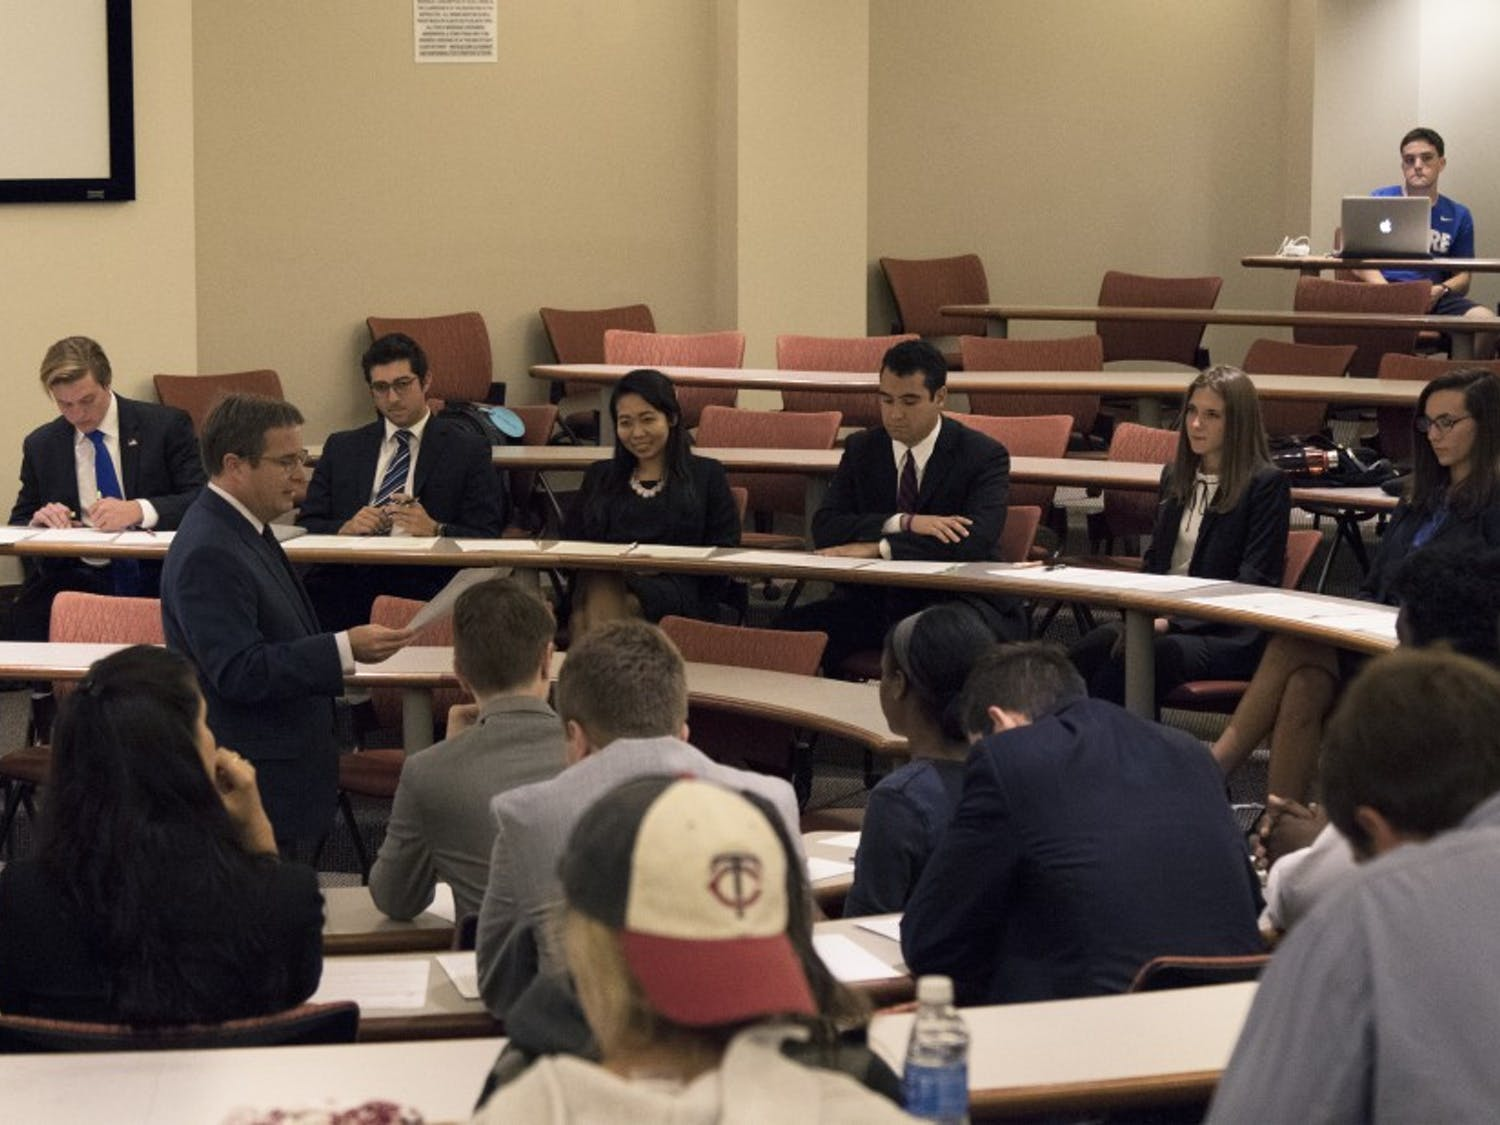 The mock debate focused on topics such asmilitary, no-fly zones, Syria, refugees, Islamic terrorism and North Korea.